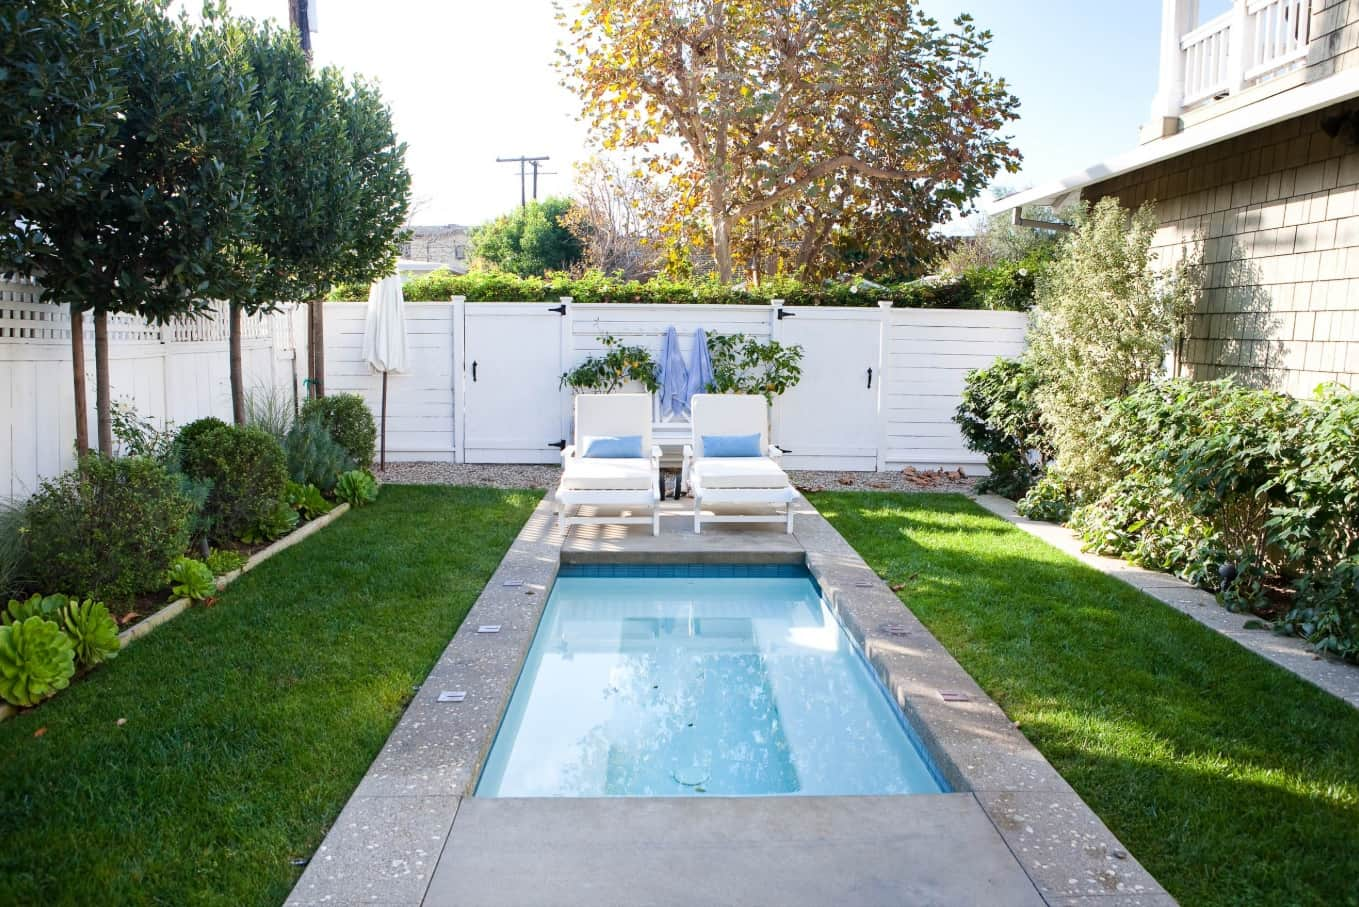 8 Steps to Take to Prepare Your Pool for the Summer. Concrete brimmed pool with white sunbeds near